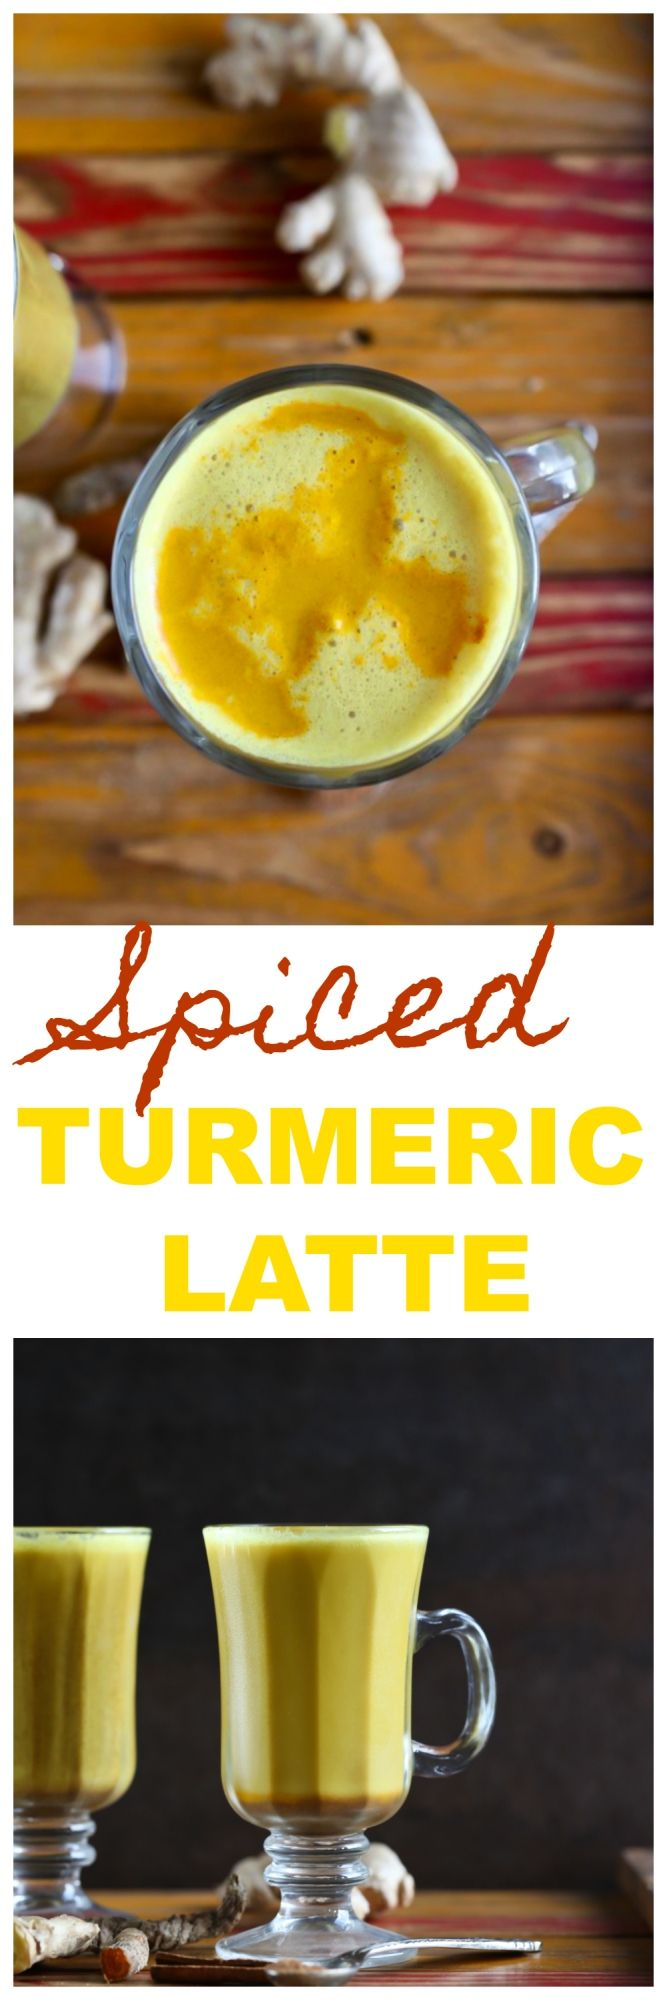 A delicious vegan dairy-free Spiced Turmeric Latte full of immune-boosting vitamins and anti-inflammatory benefits! Made with fresh turmeric and ginger and nutmeg, cinnamon, black pepper and vanilla for a delicious and creamy latte! via @thevegan8